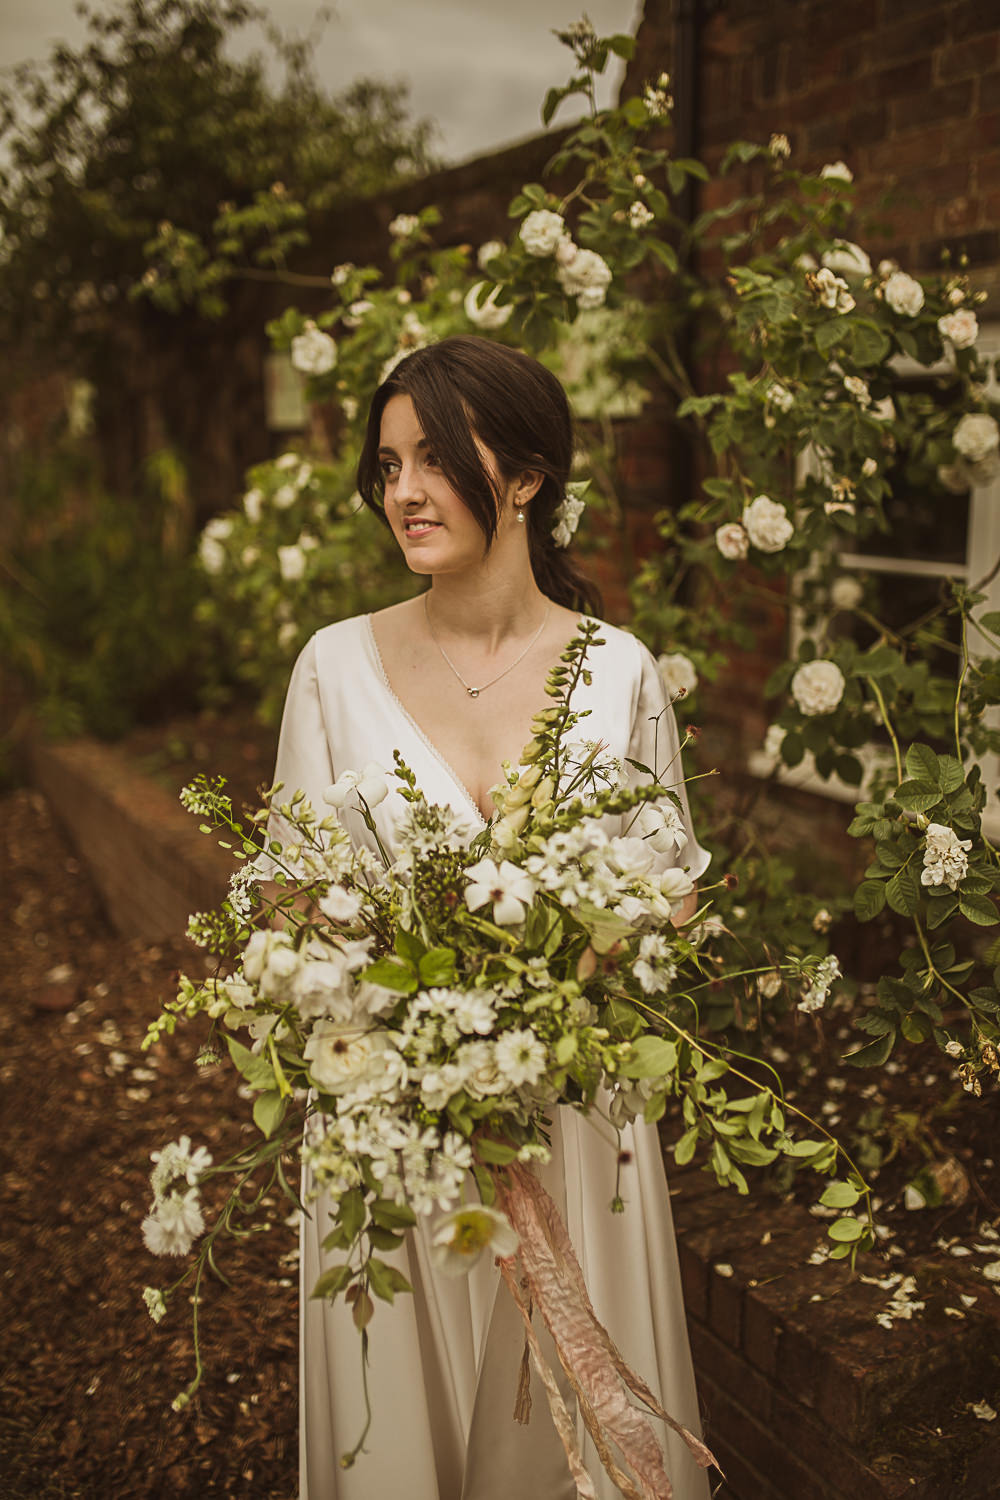 Small Wedding Ideas The Springles Bouquet Flowers Bride Bridal White Greenery Foliage